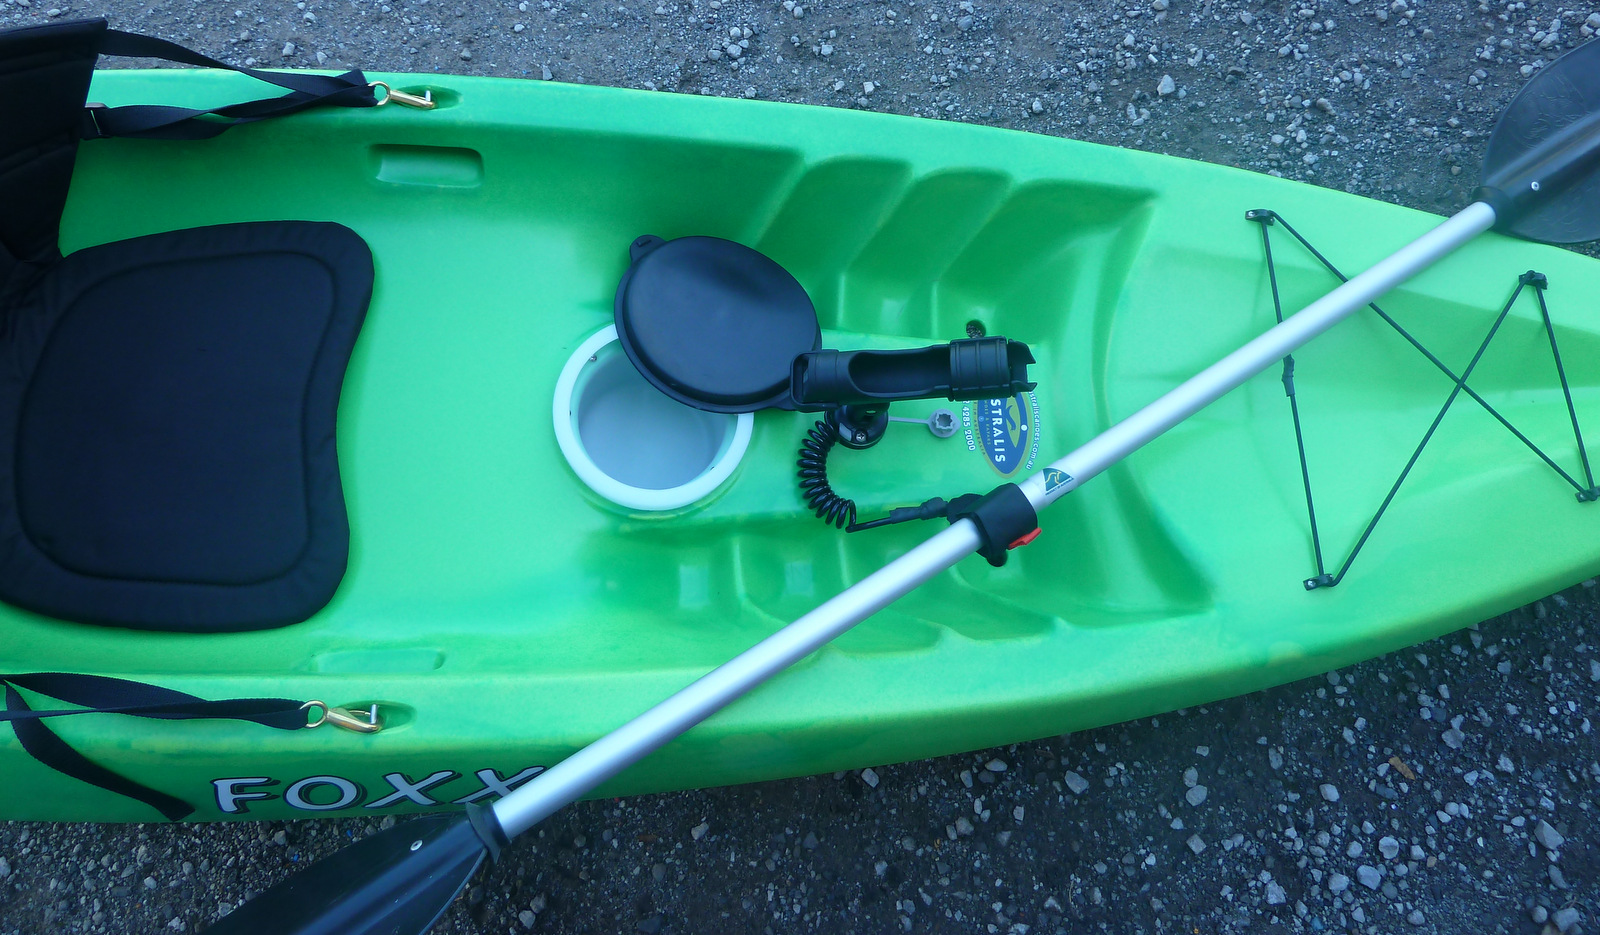 Foxx Stackable Sit On Top Fishing Kayak Made In Australia